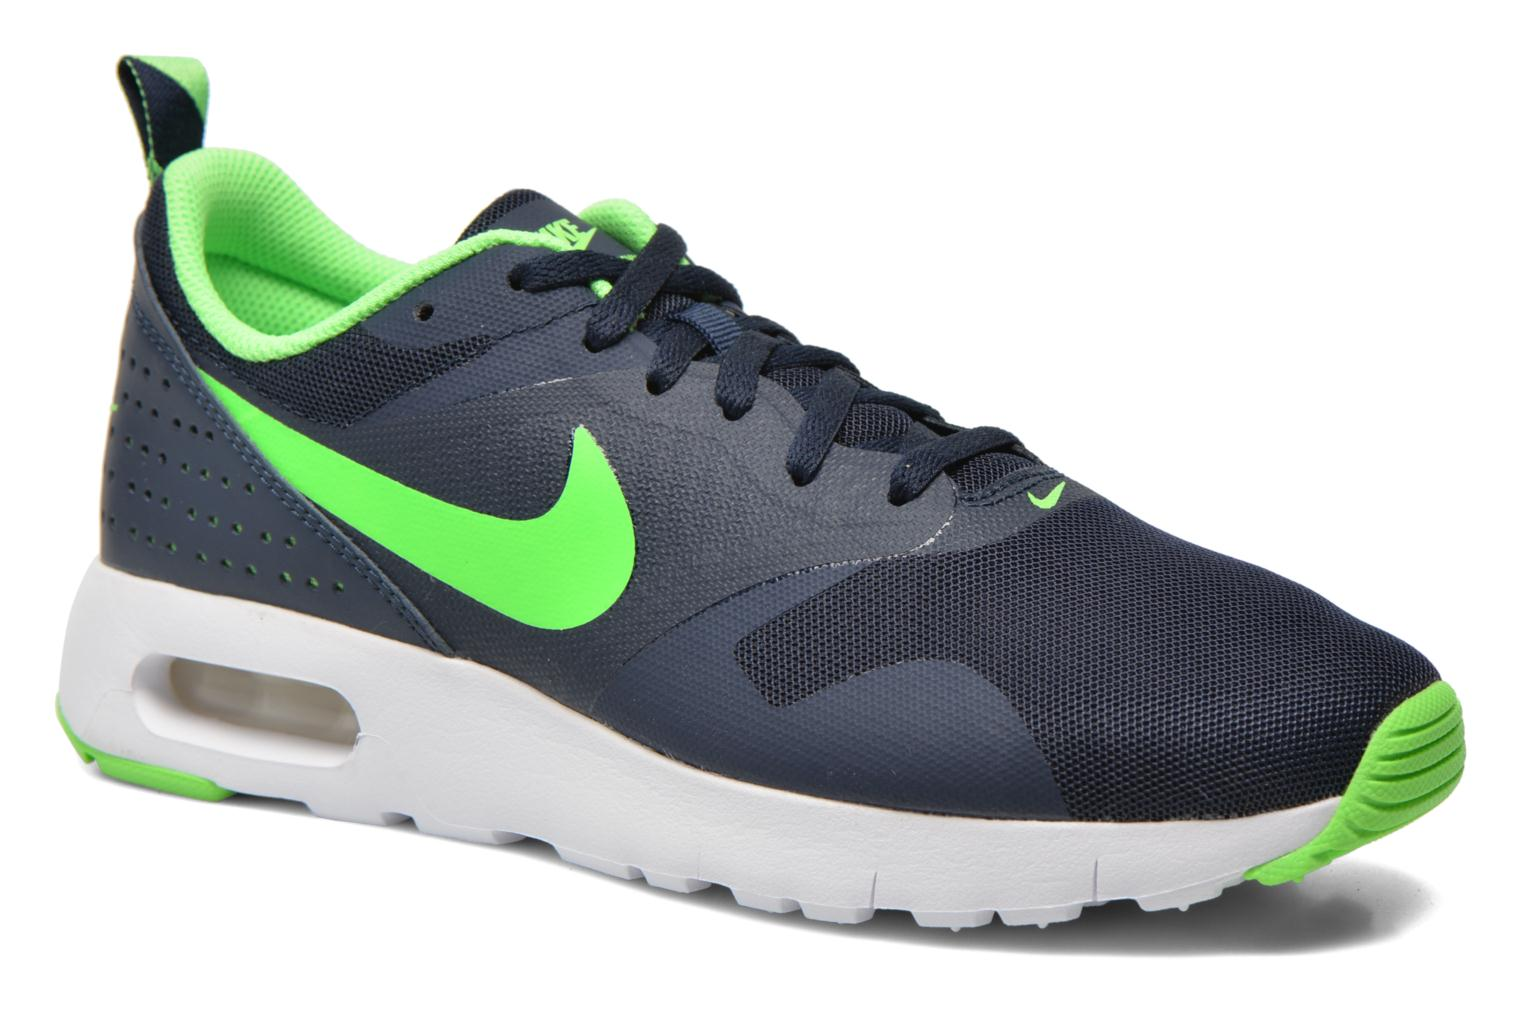 Air Max Tavas (Gs) Obsidian/Voltage Green-White